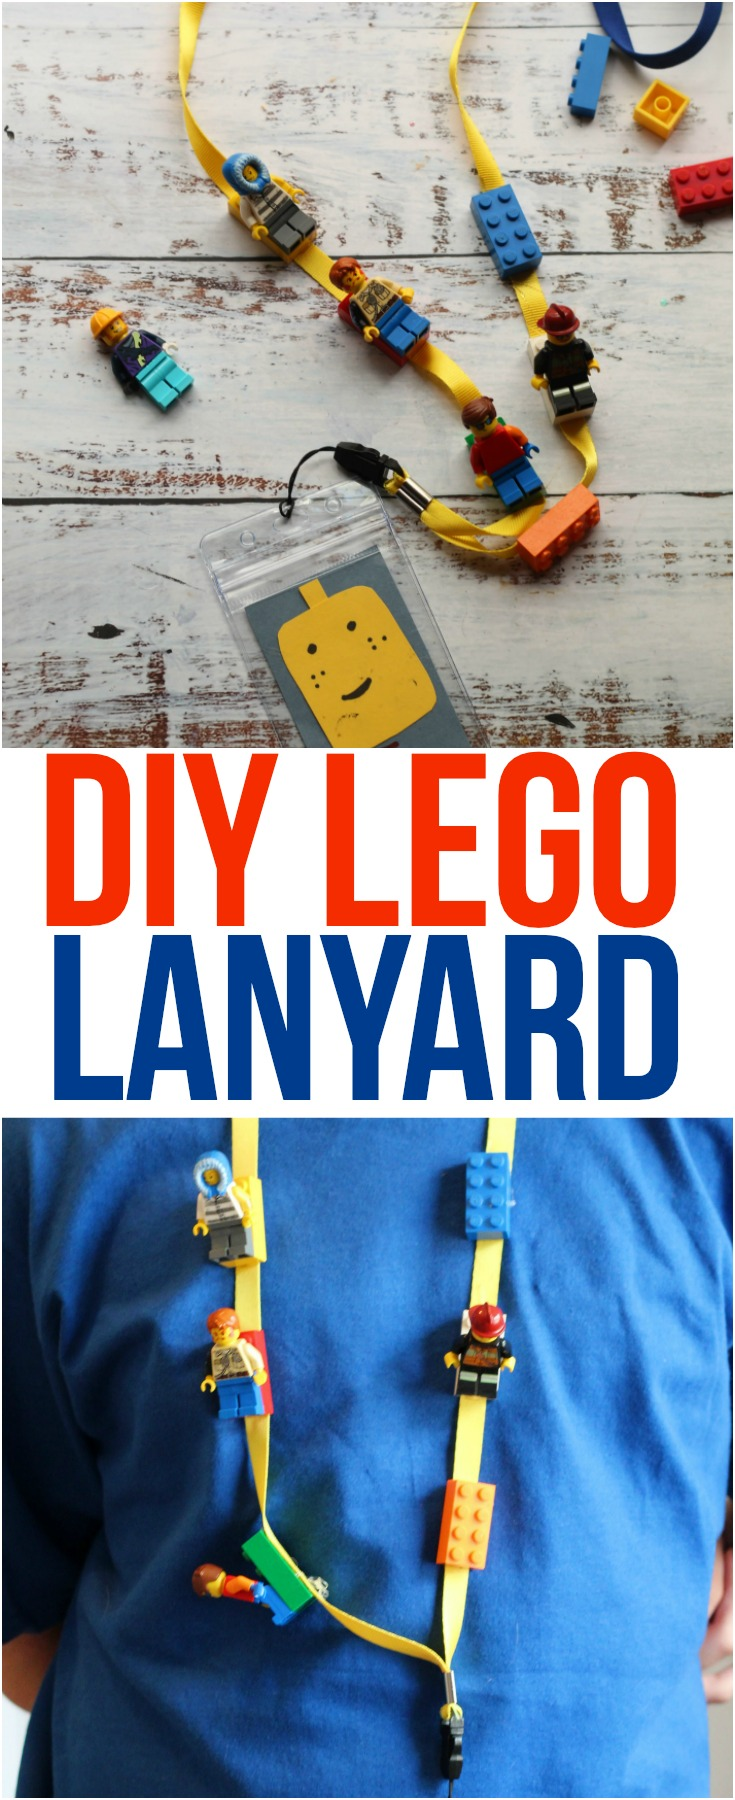 Step by step directions to create a simple DIY LEGO Lanyard, perfect for trading LEGO Minifigs on your next fun trip to LEGOLAND!  #LEGO #lanyard #DIY  #LEGOLAND